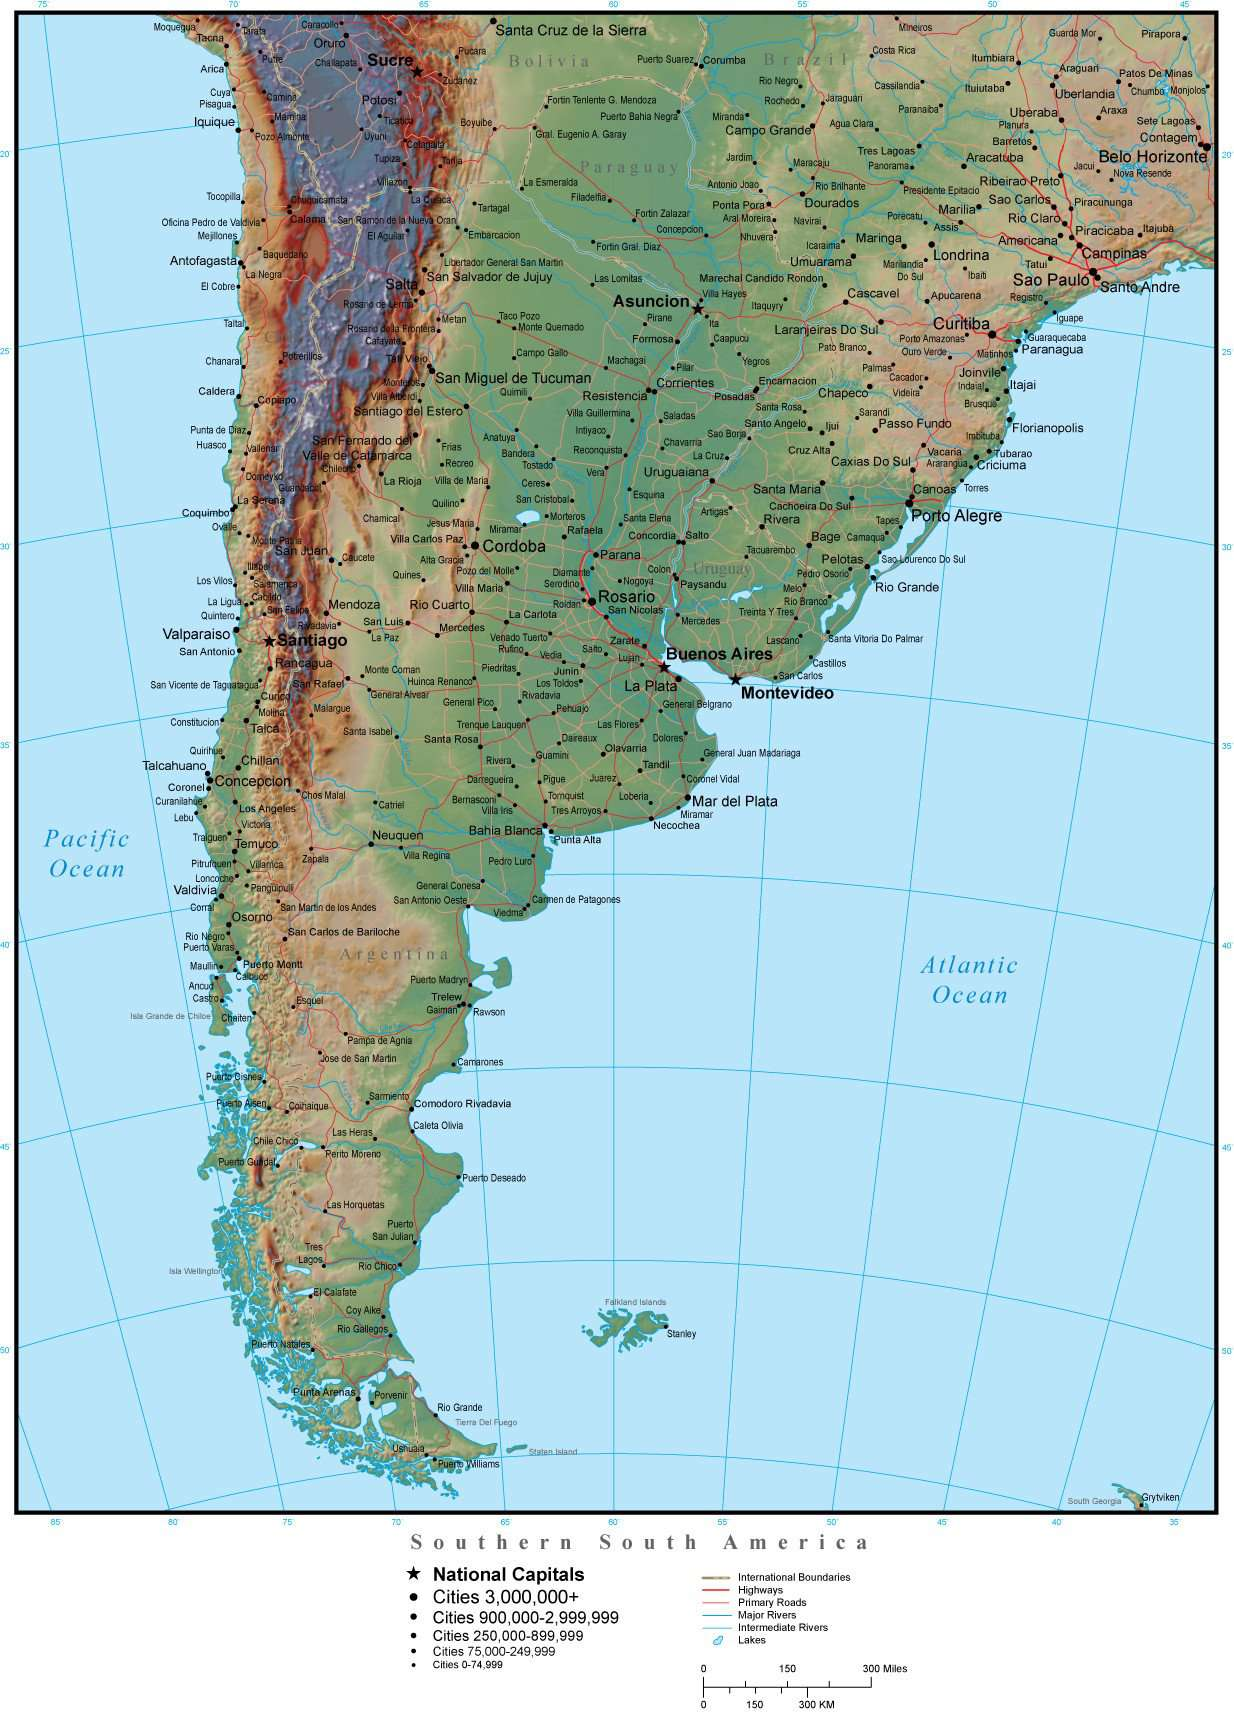 Southern South America Map Plus Terrain with Countries, Capitals, Cities,  Roads, and Water Features